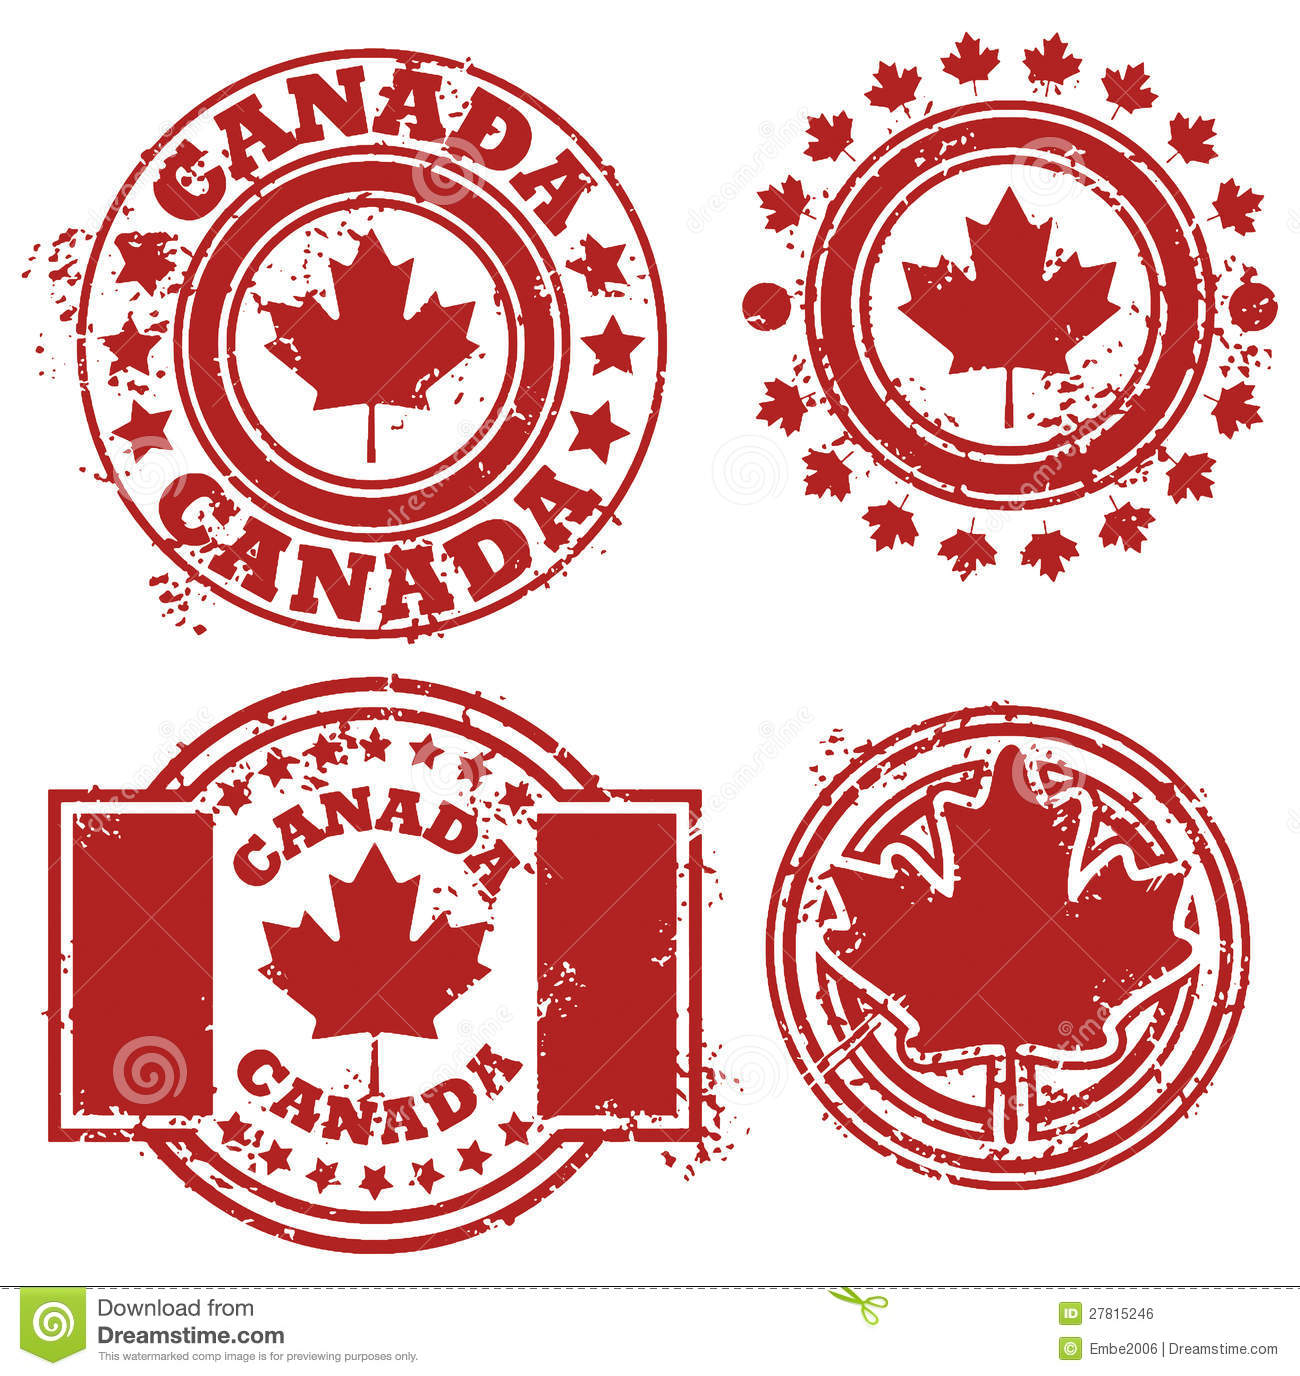 Canada Flag Stamp Royalty Free Stock Image - Image: 27815246